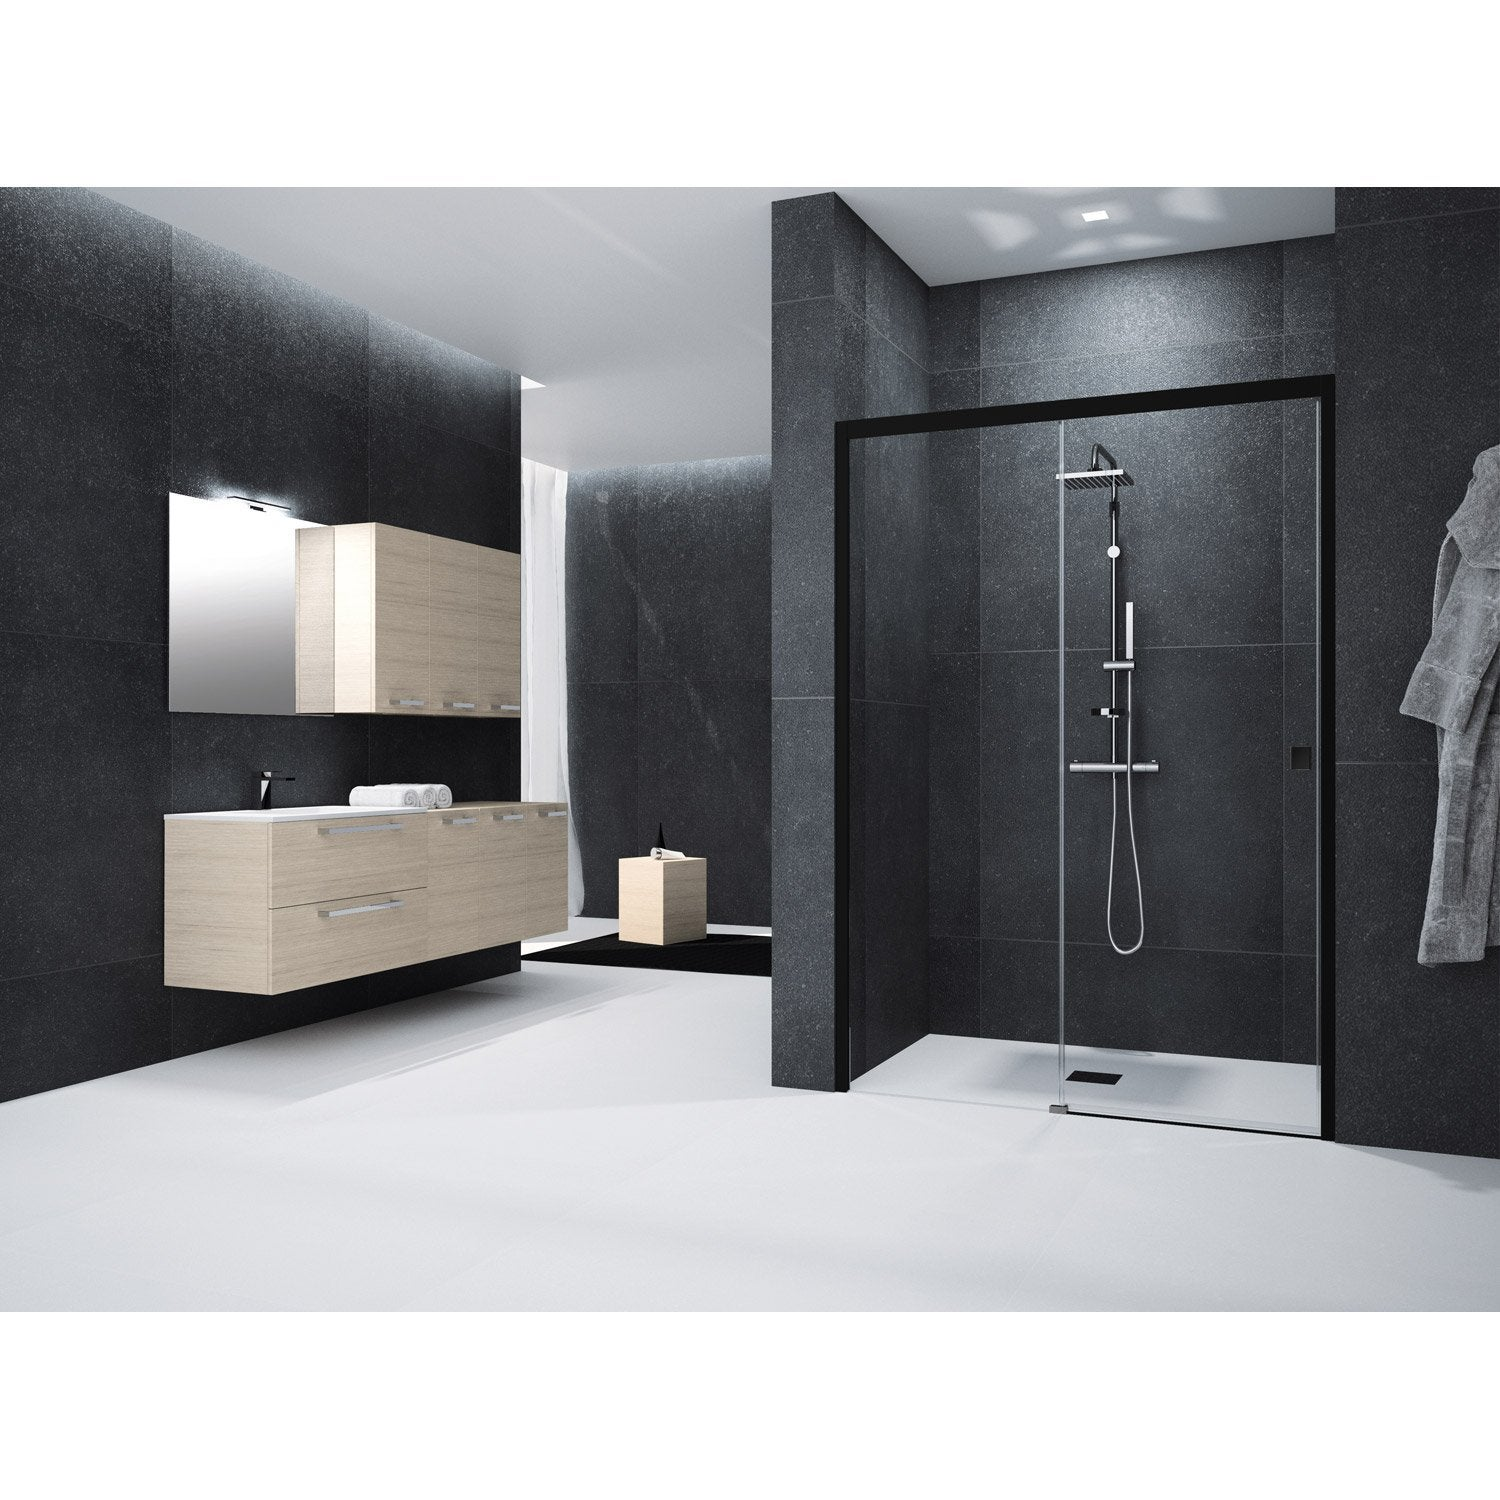 Porte douche coulissante 140 maison design for Leroy merlin porte douche